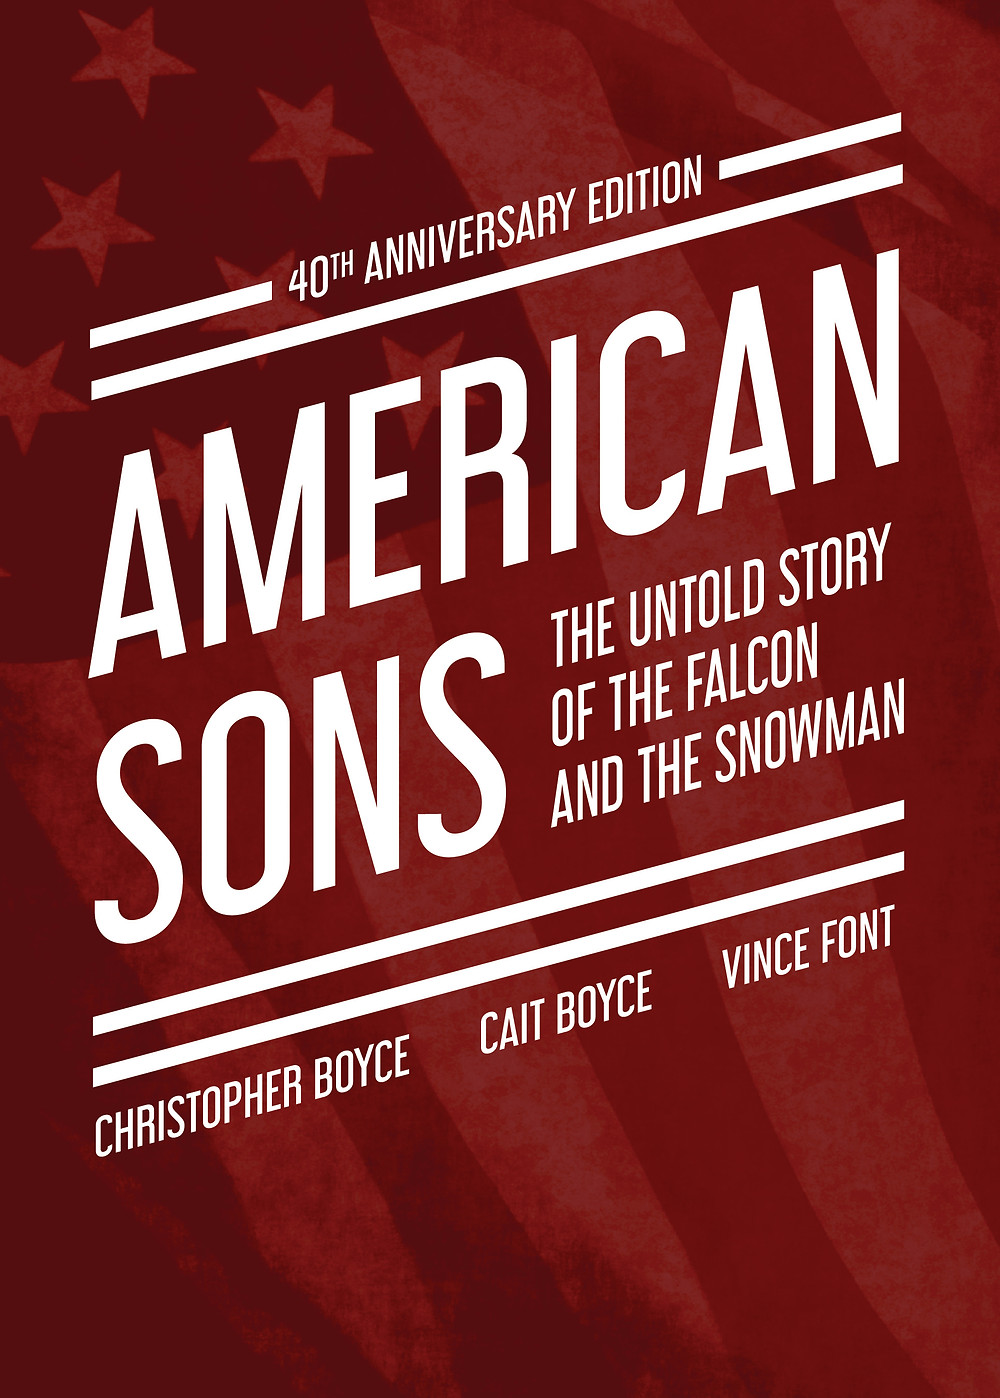 Hardcover dust jacket for Christopher Boyce's book American Sons: The Untold Story of the Falcon and the Snowman (40th Anniversary Edition)